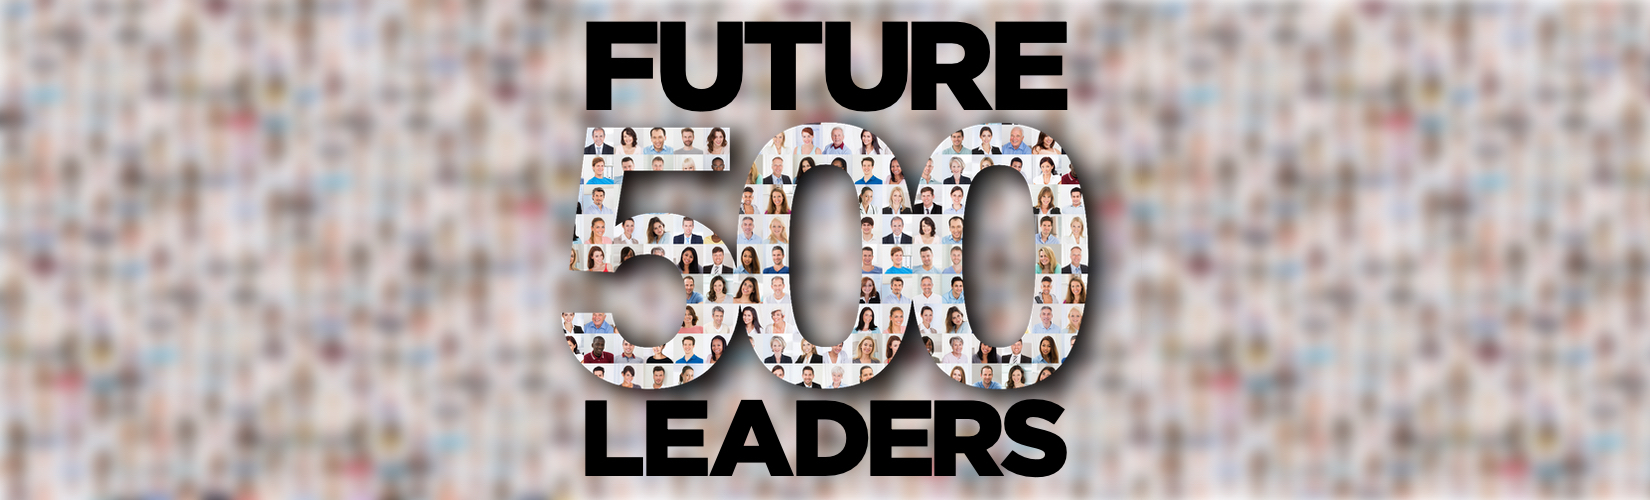 Future 500 Leaders governance scholarship